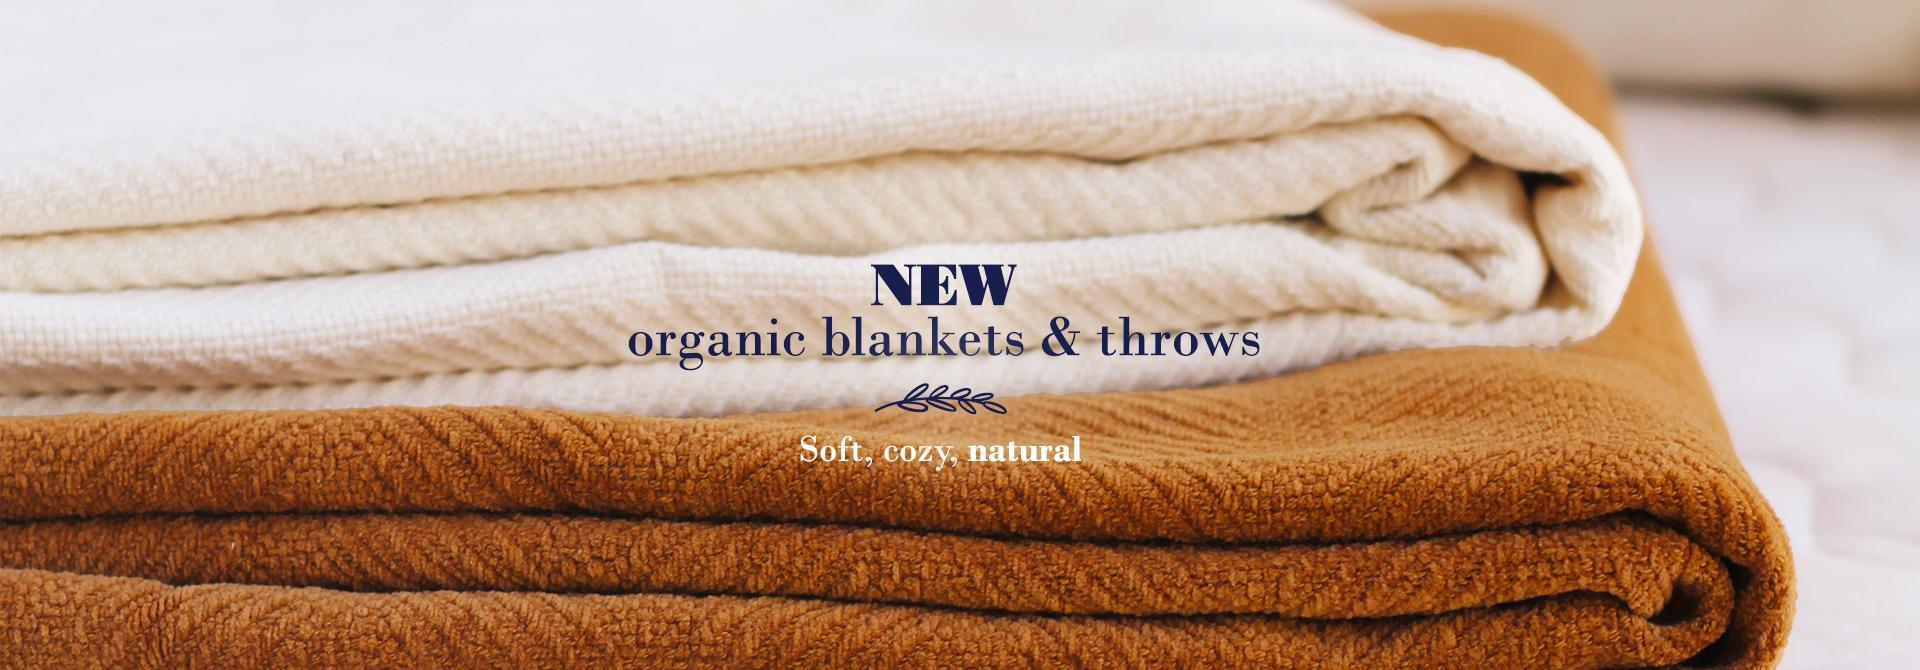 New Blankets and Throws